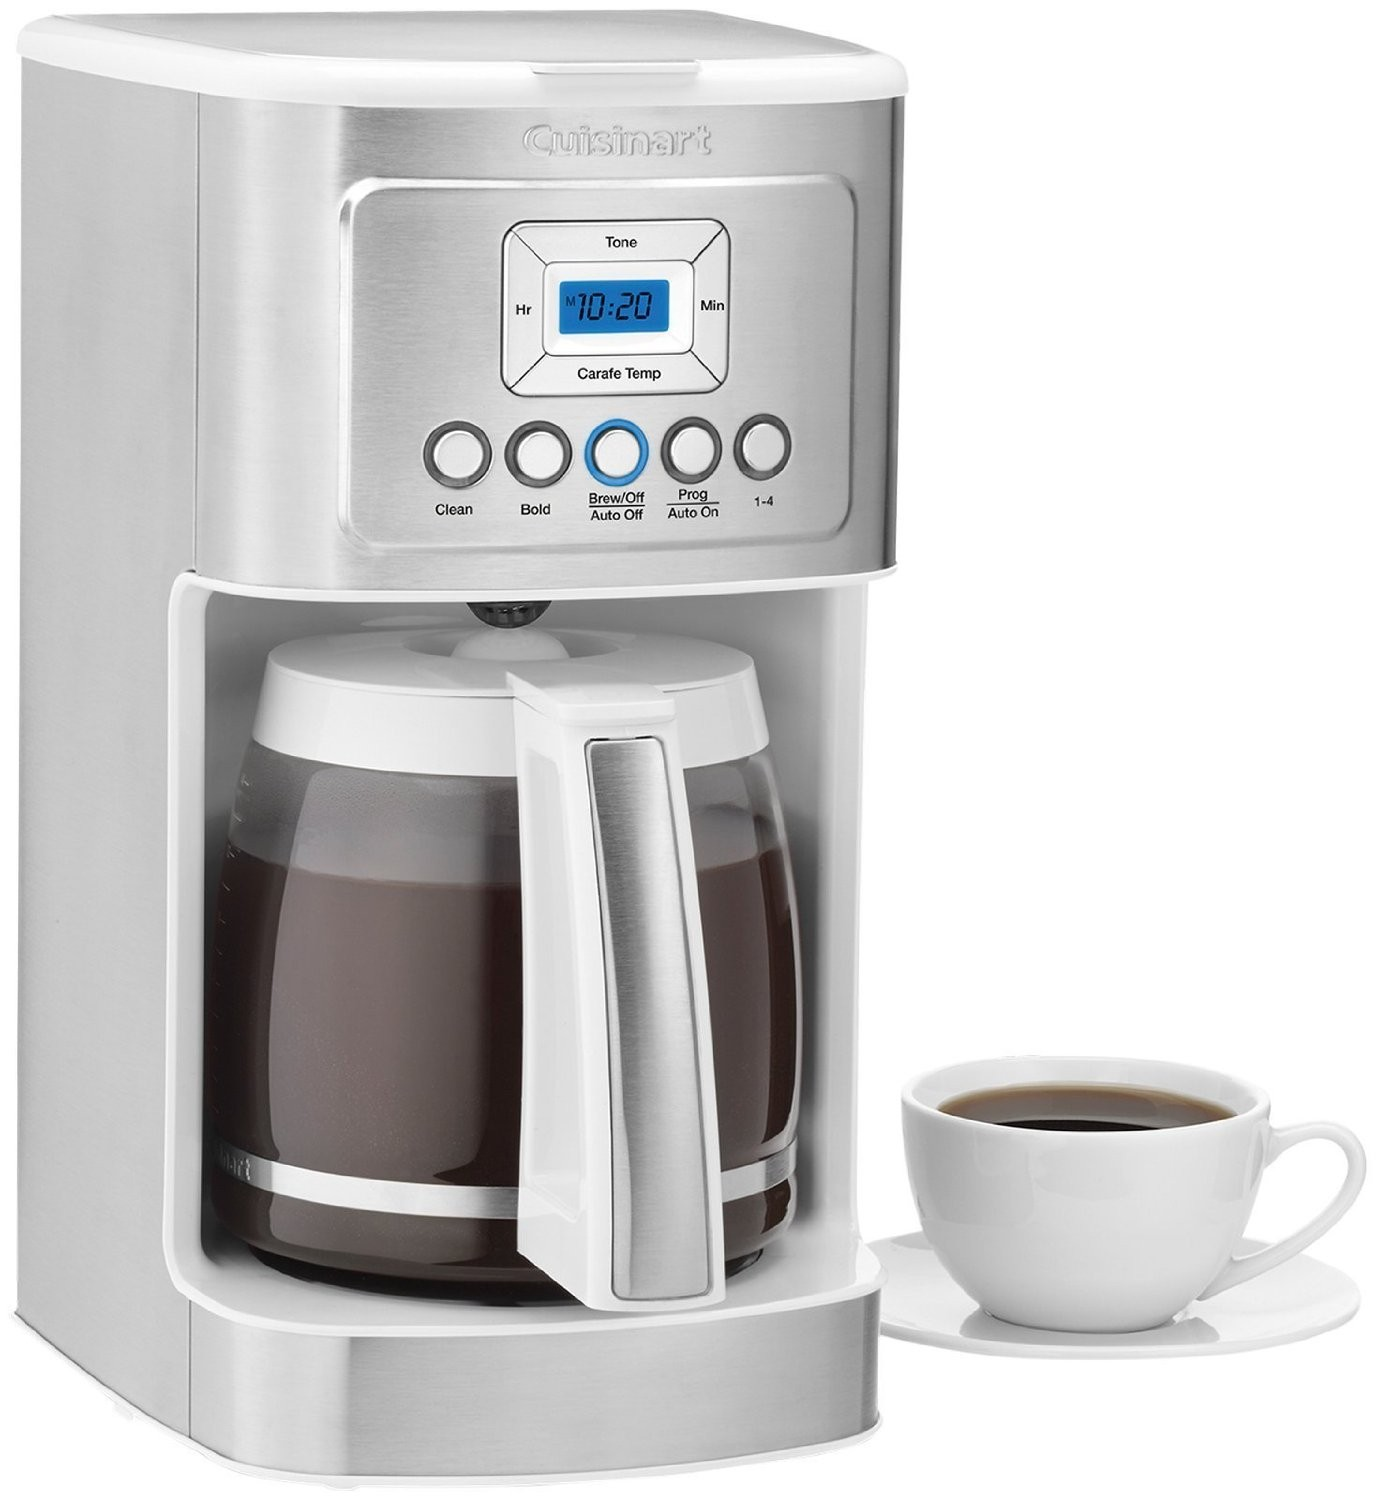 Cuisinart Brushed Steel-White 14 Cup Programmable Coffee Maker